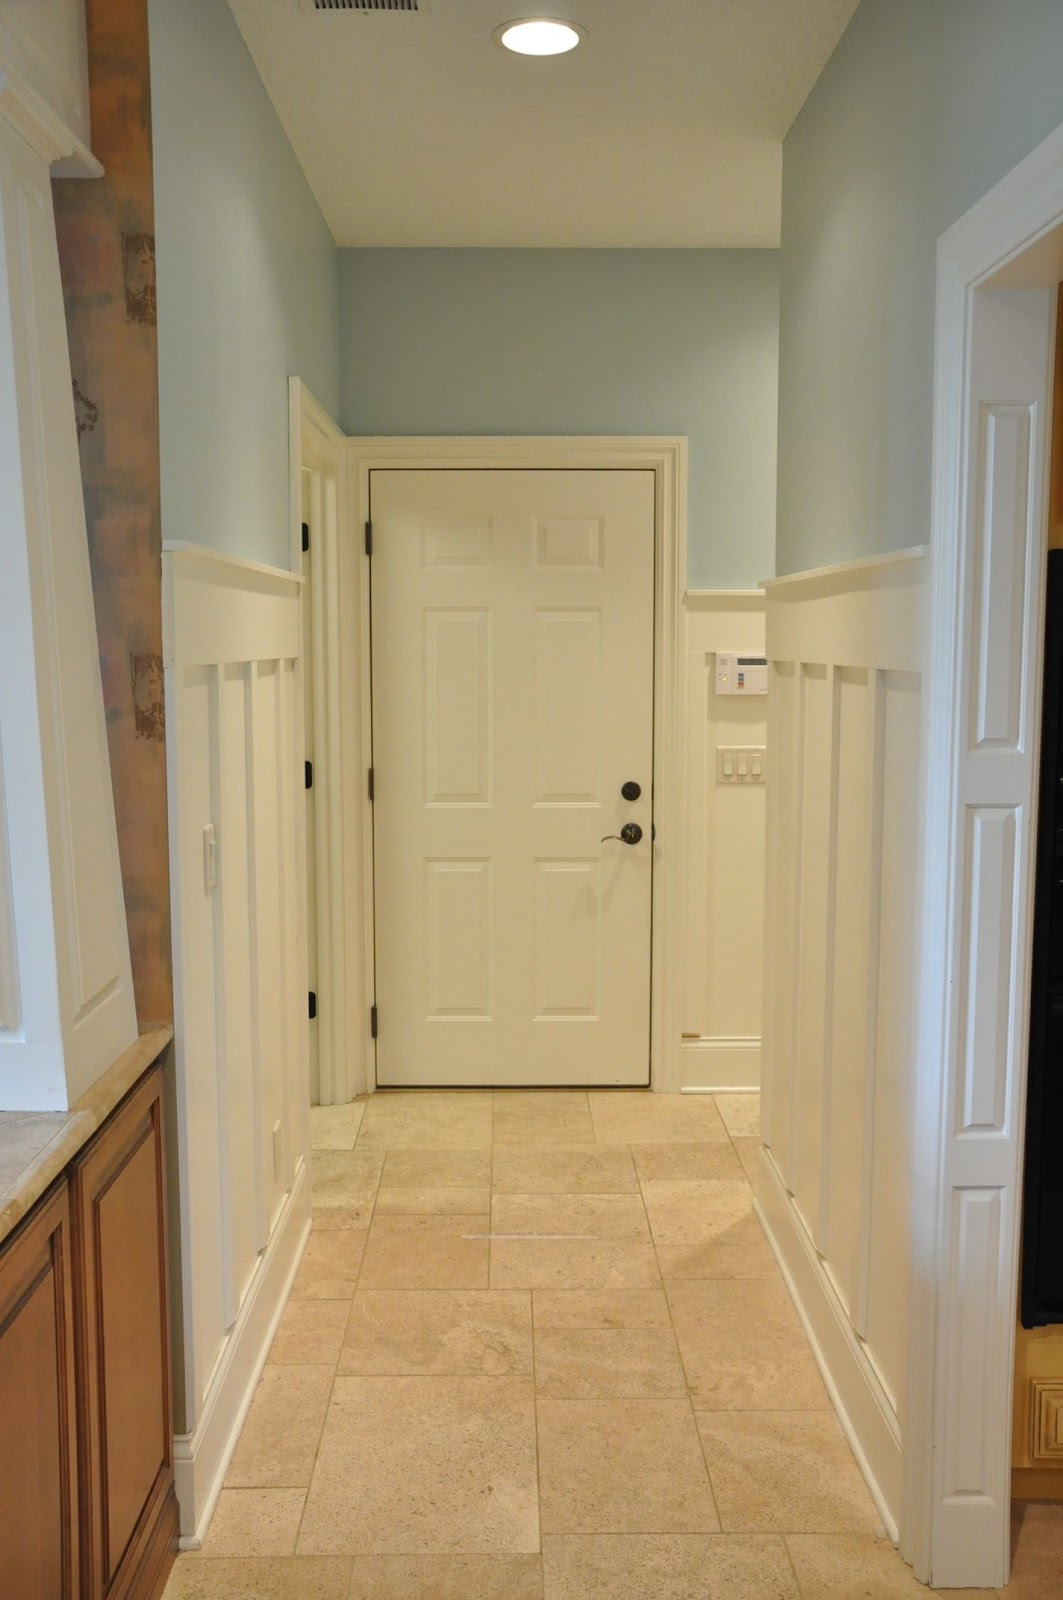 Hallway paint colors Most In-demand Home Design